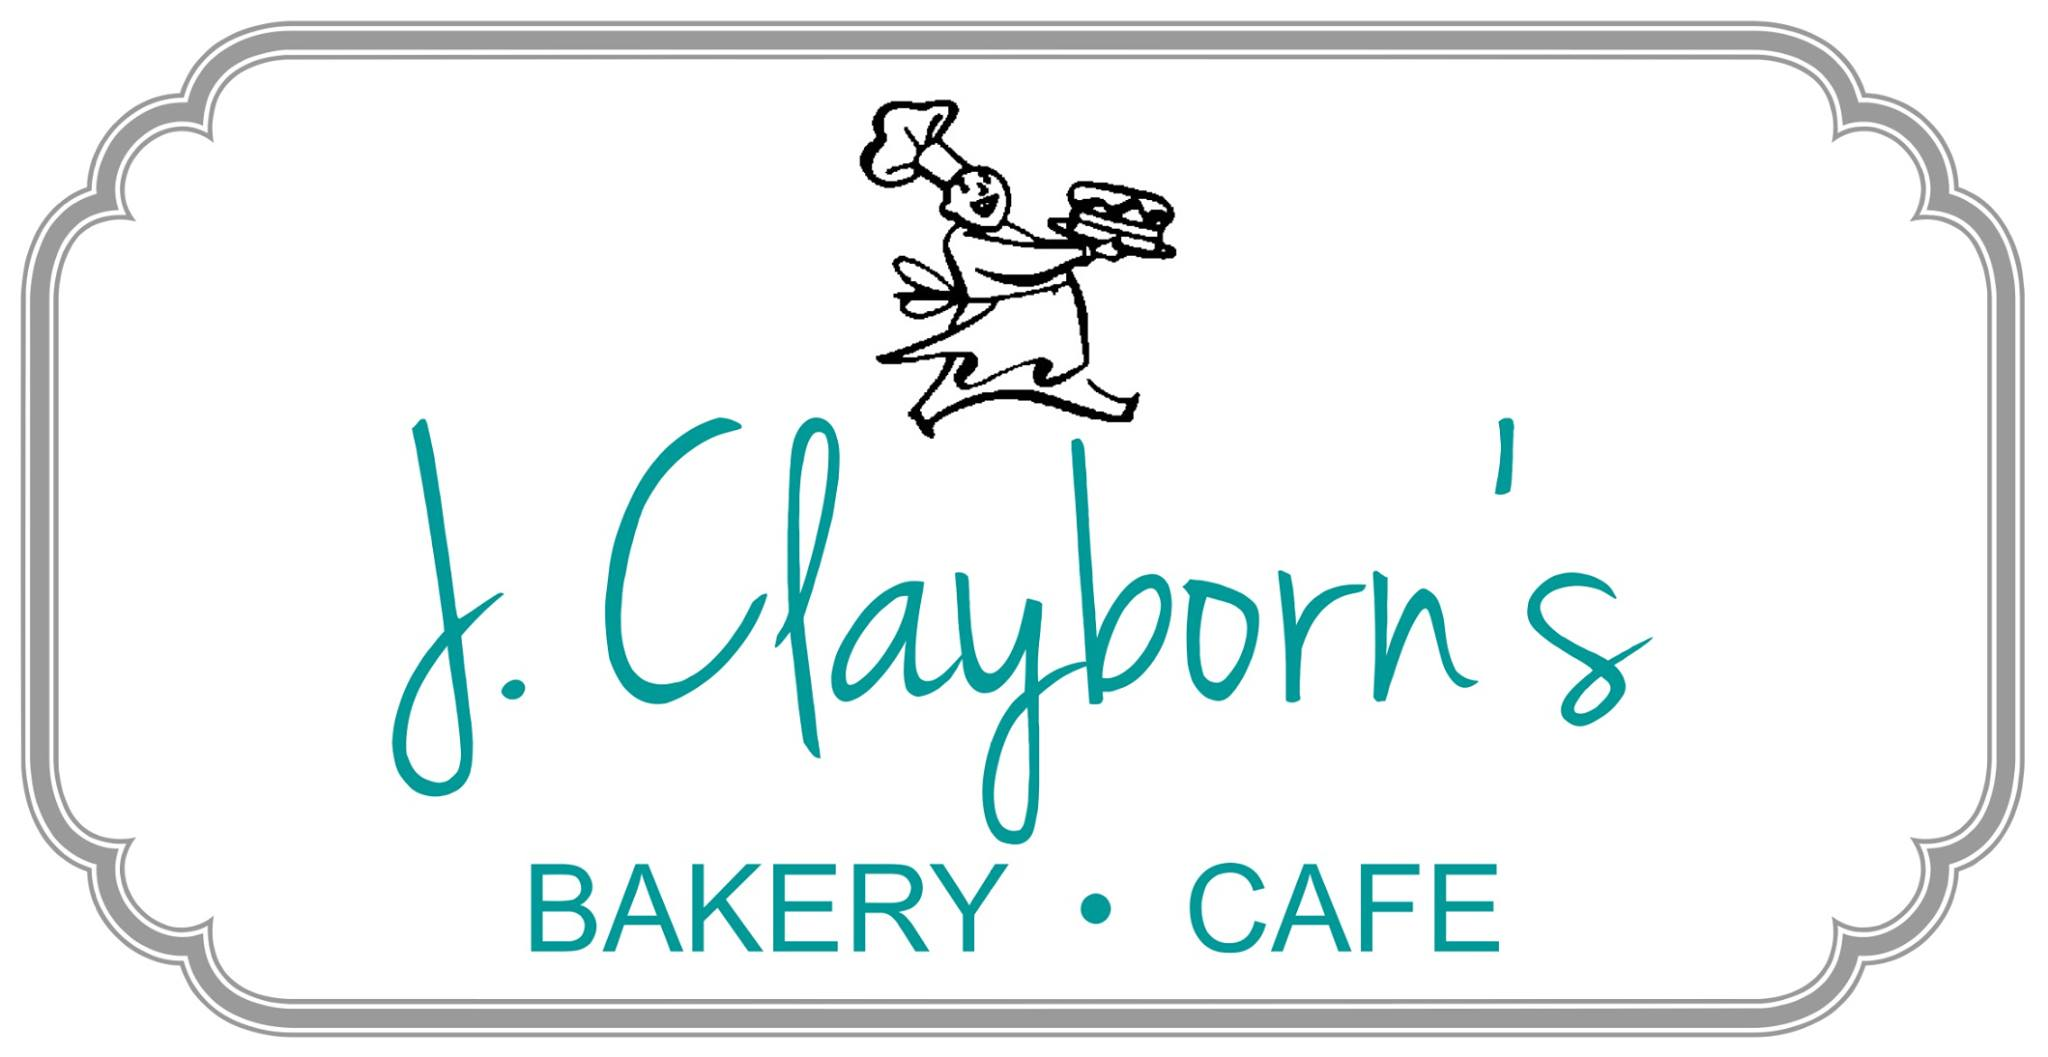 J Clayborns logo